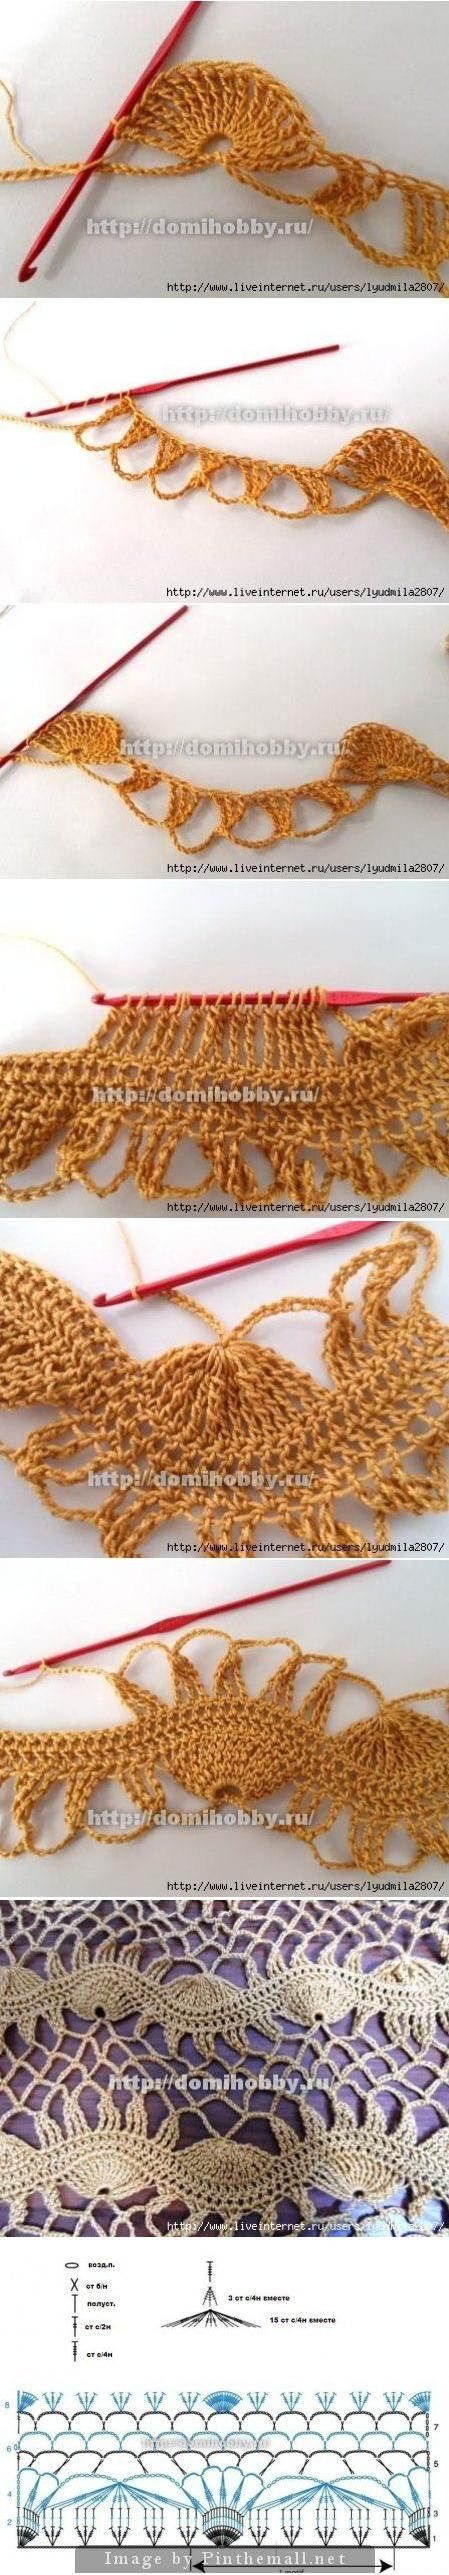 "Awesome crochet technique looks like broomstick lace! falso crochê de grampo [   ""not hairpin crochet lace poncho"",   ""Awesome crochet technique looks like broomstick lace!"",   ""crochet poncho chart ~ wish I had seen this one at the beginning of the summer! Would be beautiful for a wedding!"",   ""Faux hairpin lace ~~ just ordinary crochet ~~ falso crochê de grampo"",   ""crochet poncho chart No pattern other than chart in this image."",   ""poncho crema Tutorial for Crochet, Knitting, Crafts.""…"